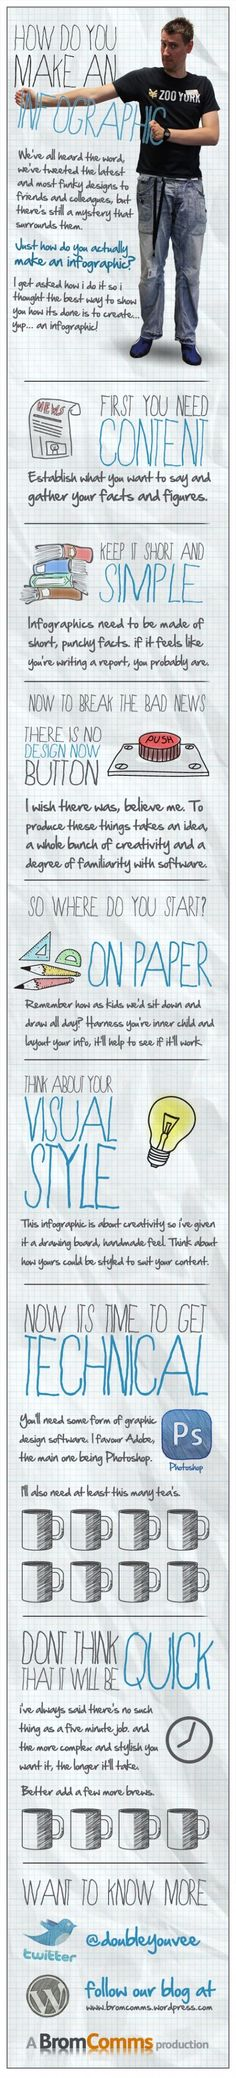 Infographic | How do you make an infographic.